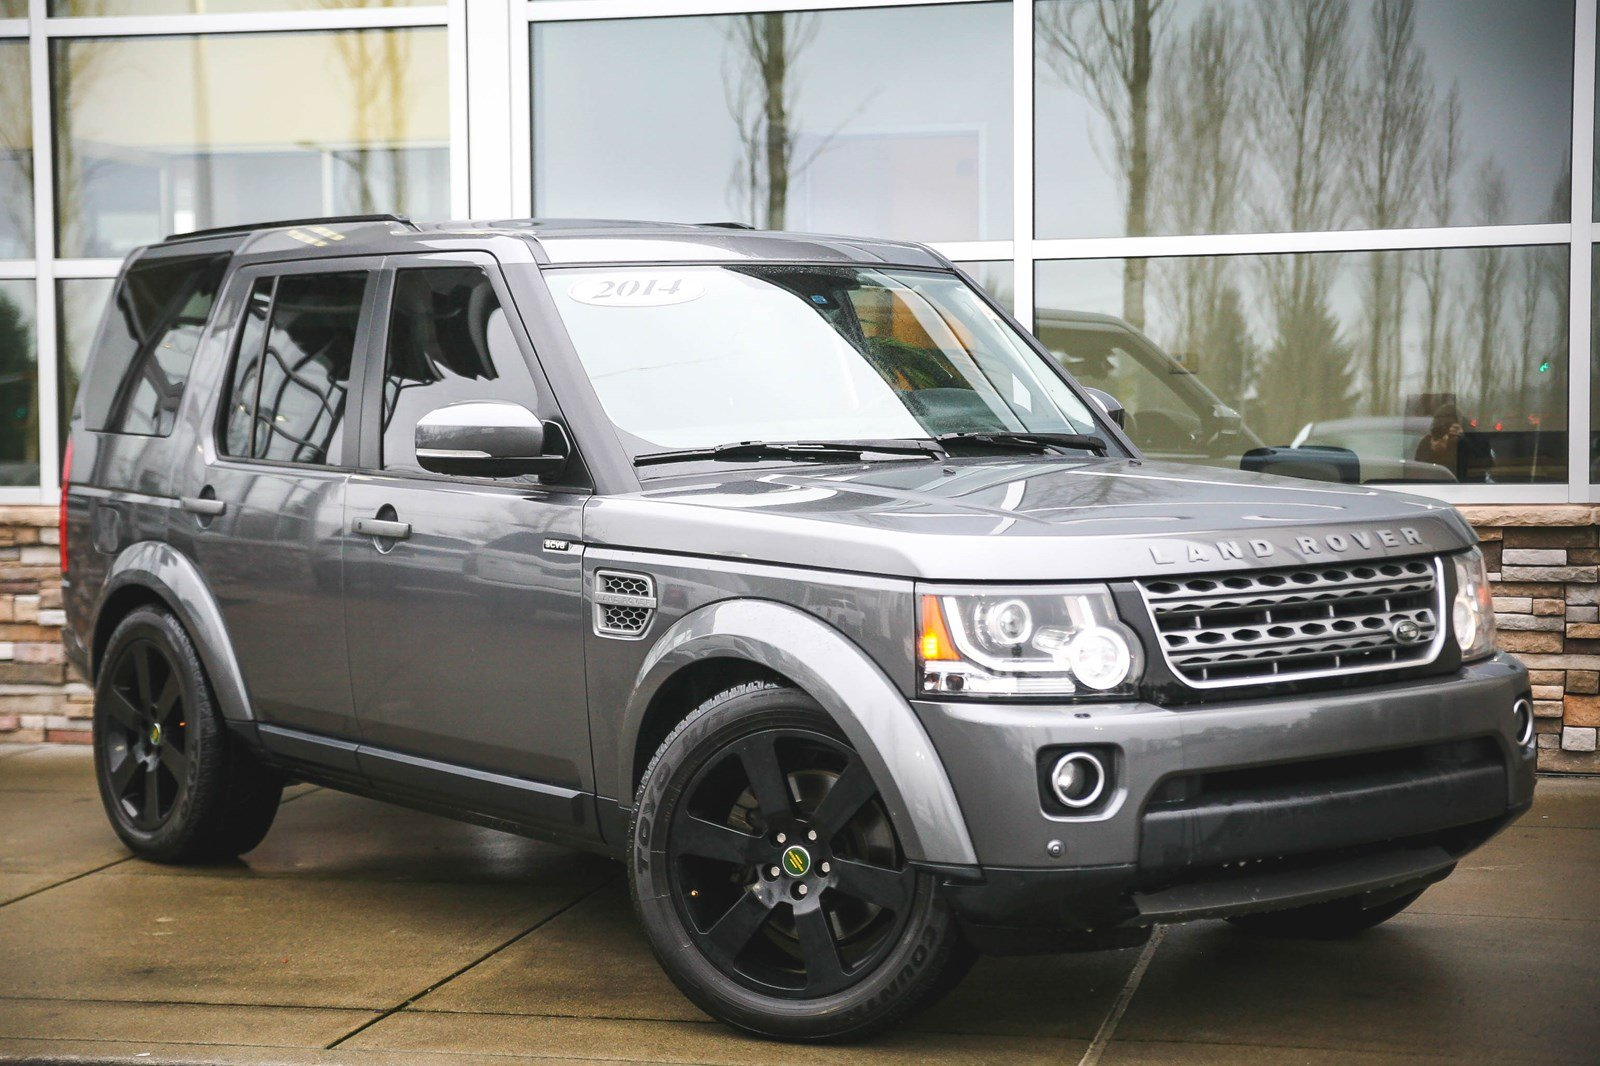 Certified Pre-Owned 2014 Land Rover LR4 HSE